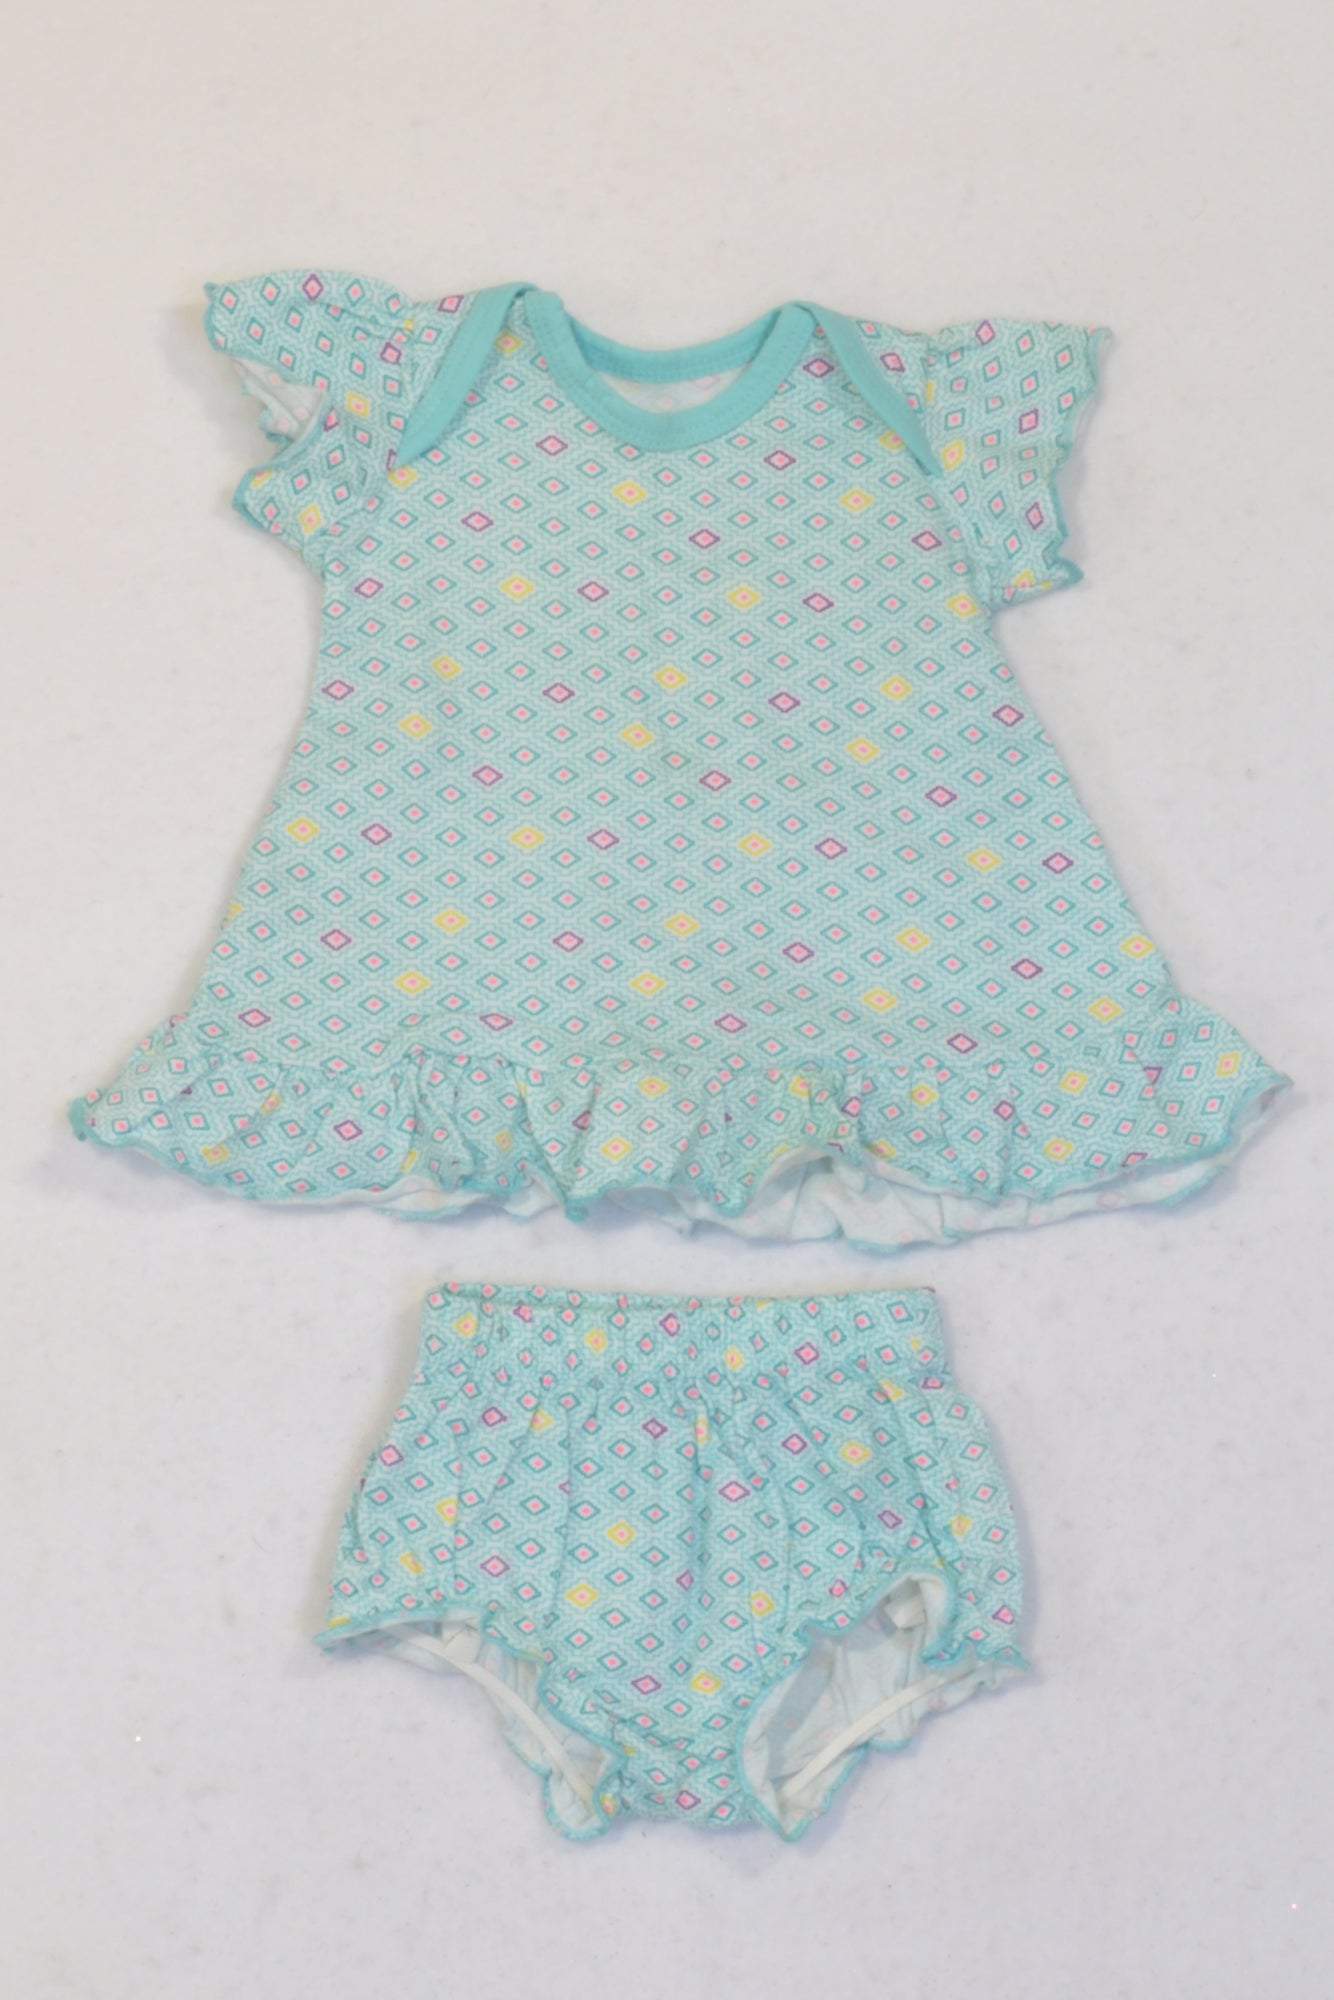 New Woolworths Mint Printed Dress & Bloomers Outfit Girls N-B